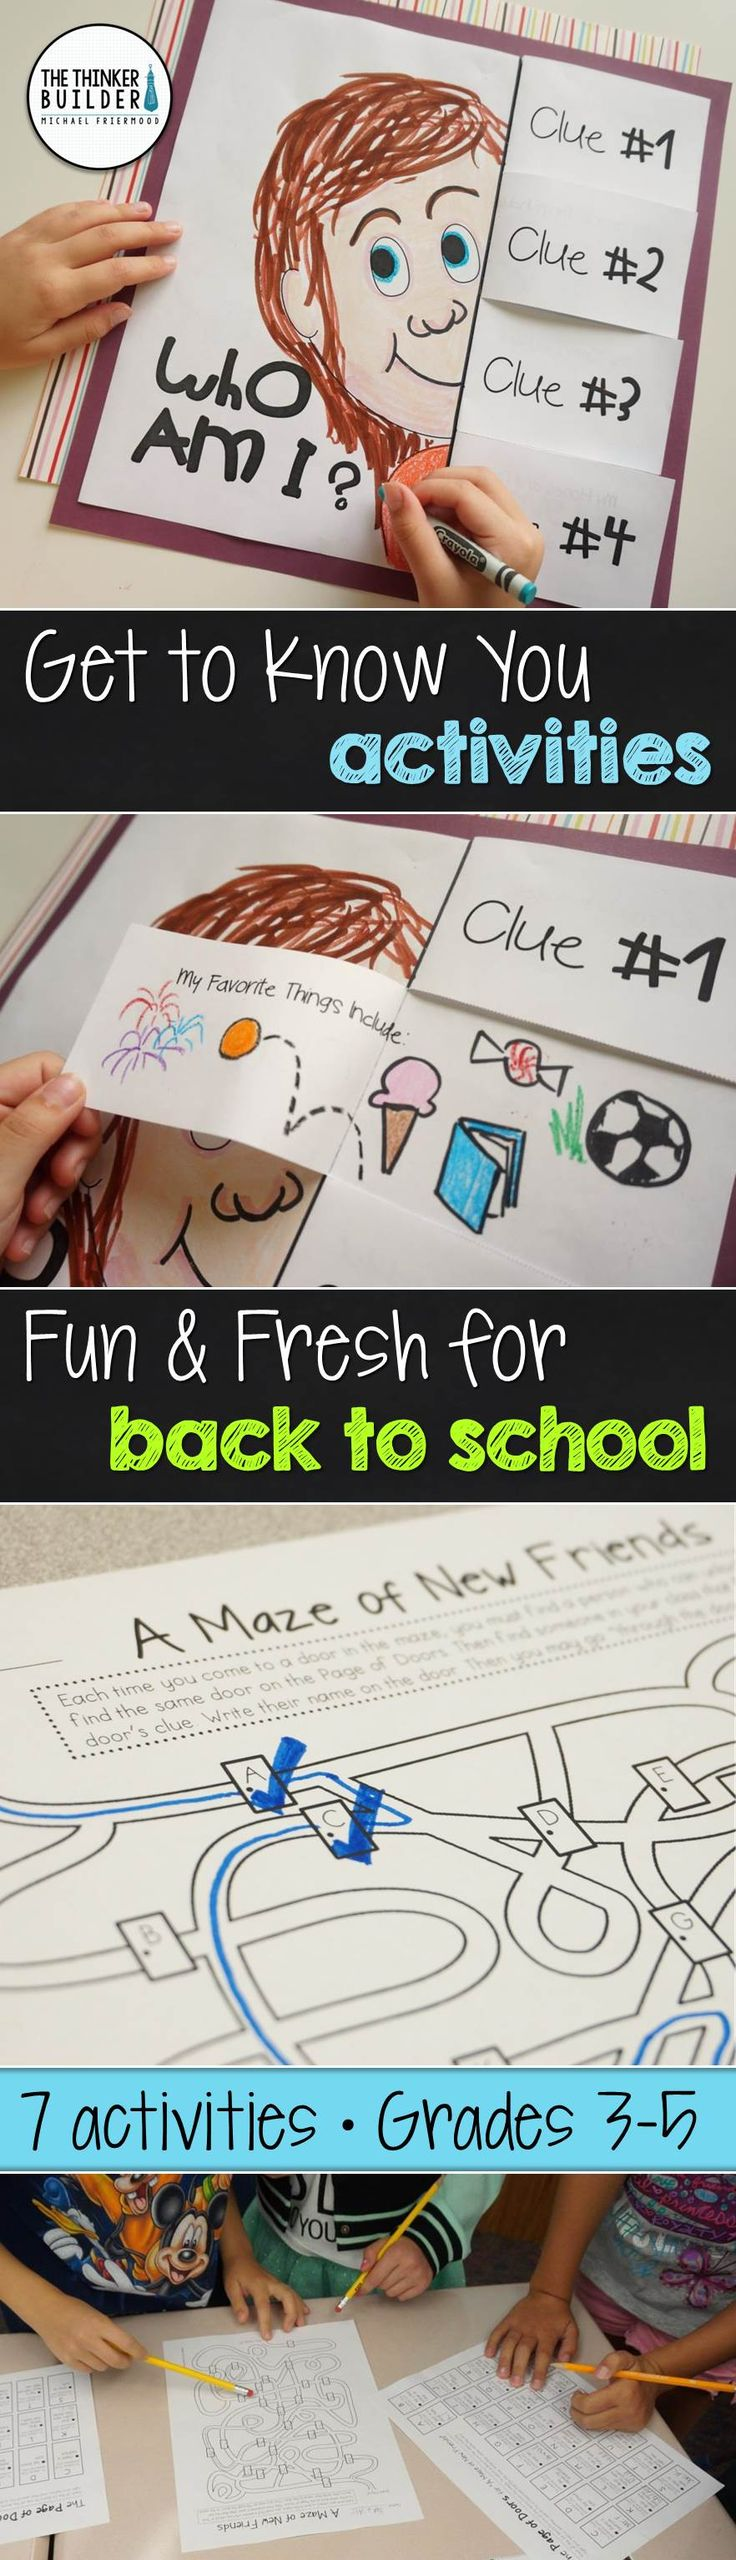 "7 fun and fresh get-to-know-you activities for the beginning of the year, including a ""Who Am I?"" poster with flip-flap clues, ""A Maze of New Friends"" activity, and more! Perfect for back-to-school! Gr. 3-5 ($). Click the image for details, or see the bundle of BOTH my Get-to-Know-You activity packs here: https://www.teacherspayteachers.com/Product/BUNDLE-Back-to-School-Get-To-Know-You-Activities-Fun-Fresh-2-Packs-1984515"